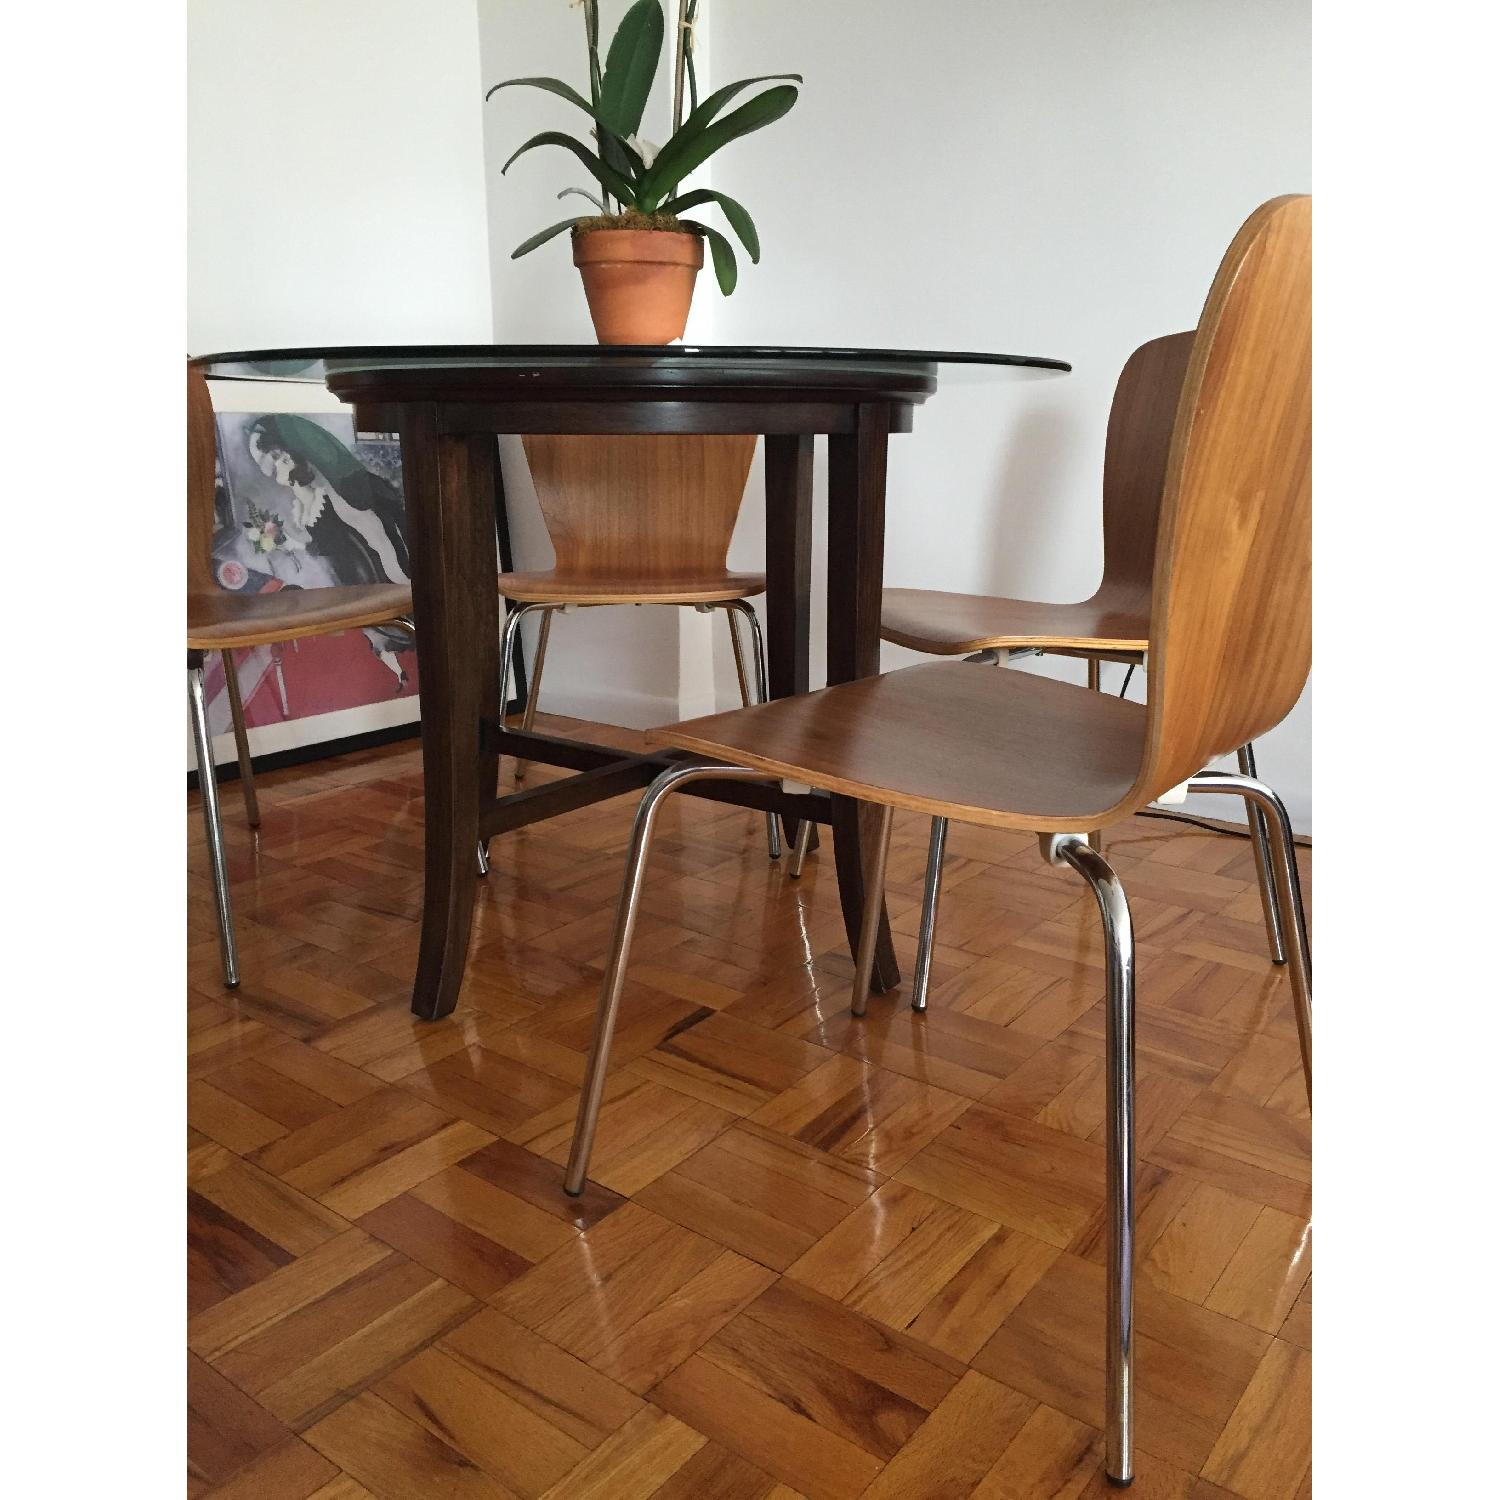 Crate & Barrel Halo Ebony Round Dining Table w/ Glass Top - image-2